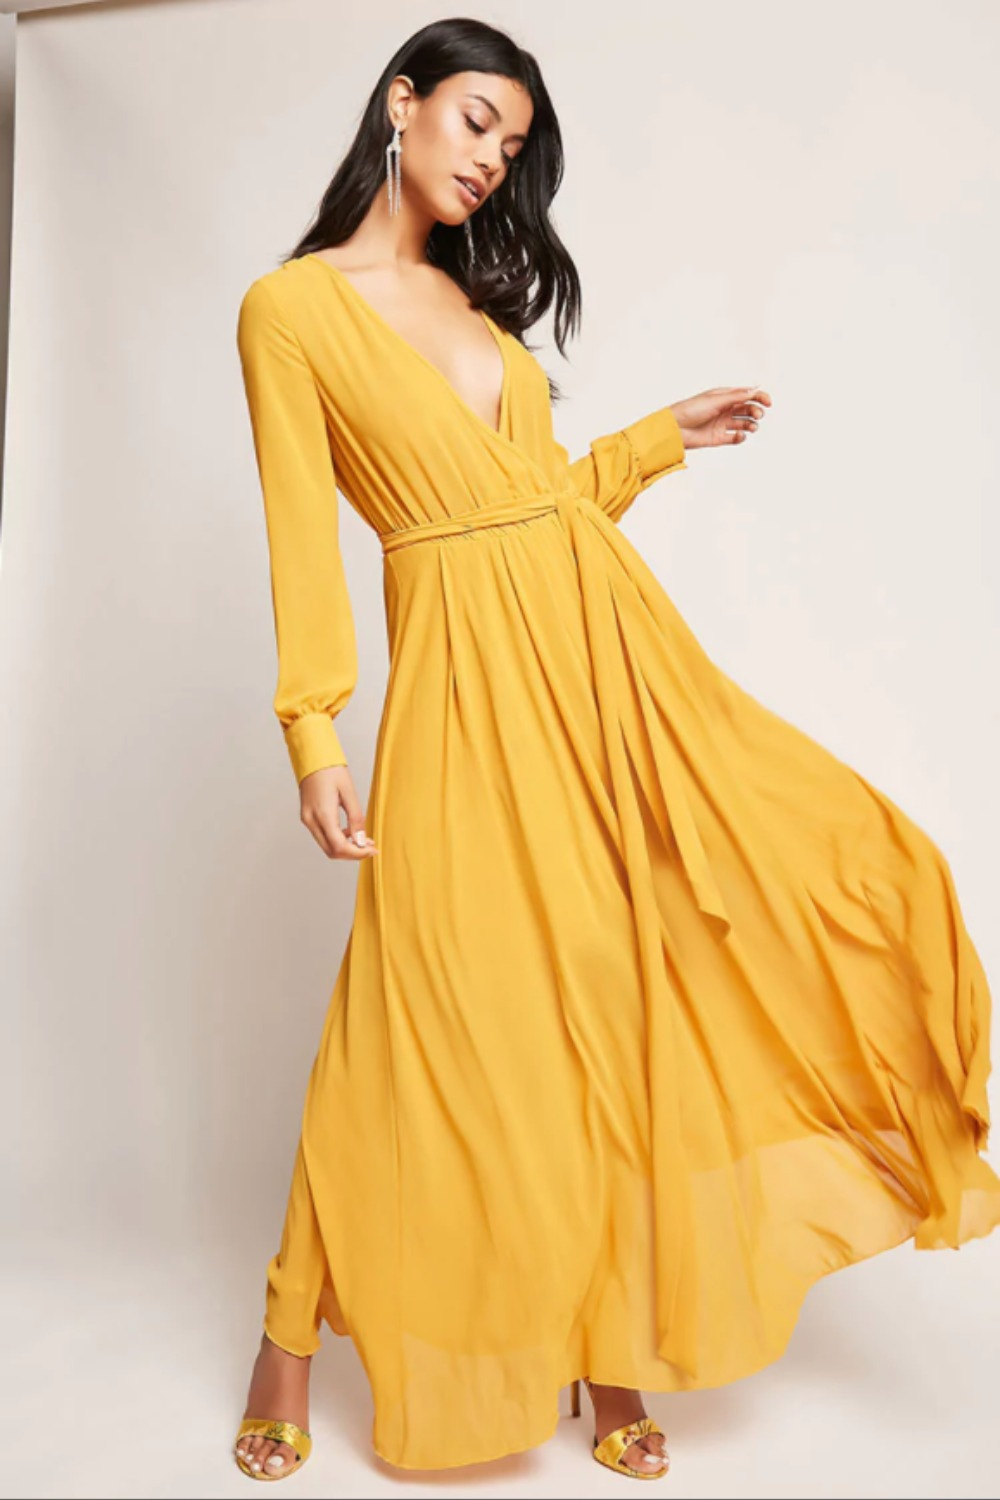 Trending , 20 Stylish Dresses to Wear to a Fall Wedding